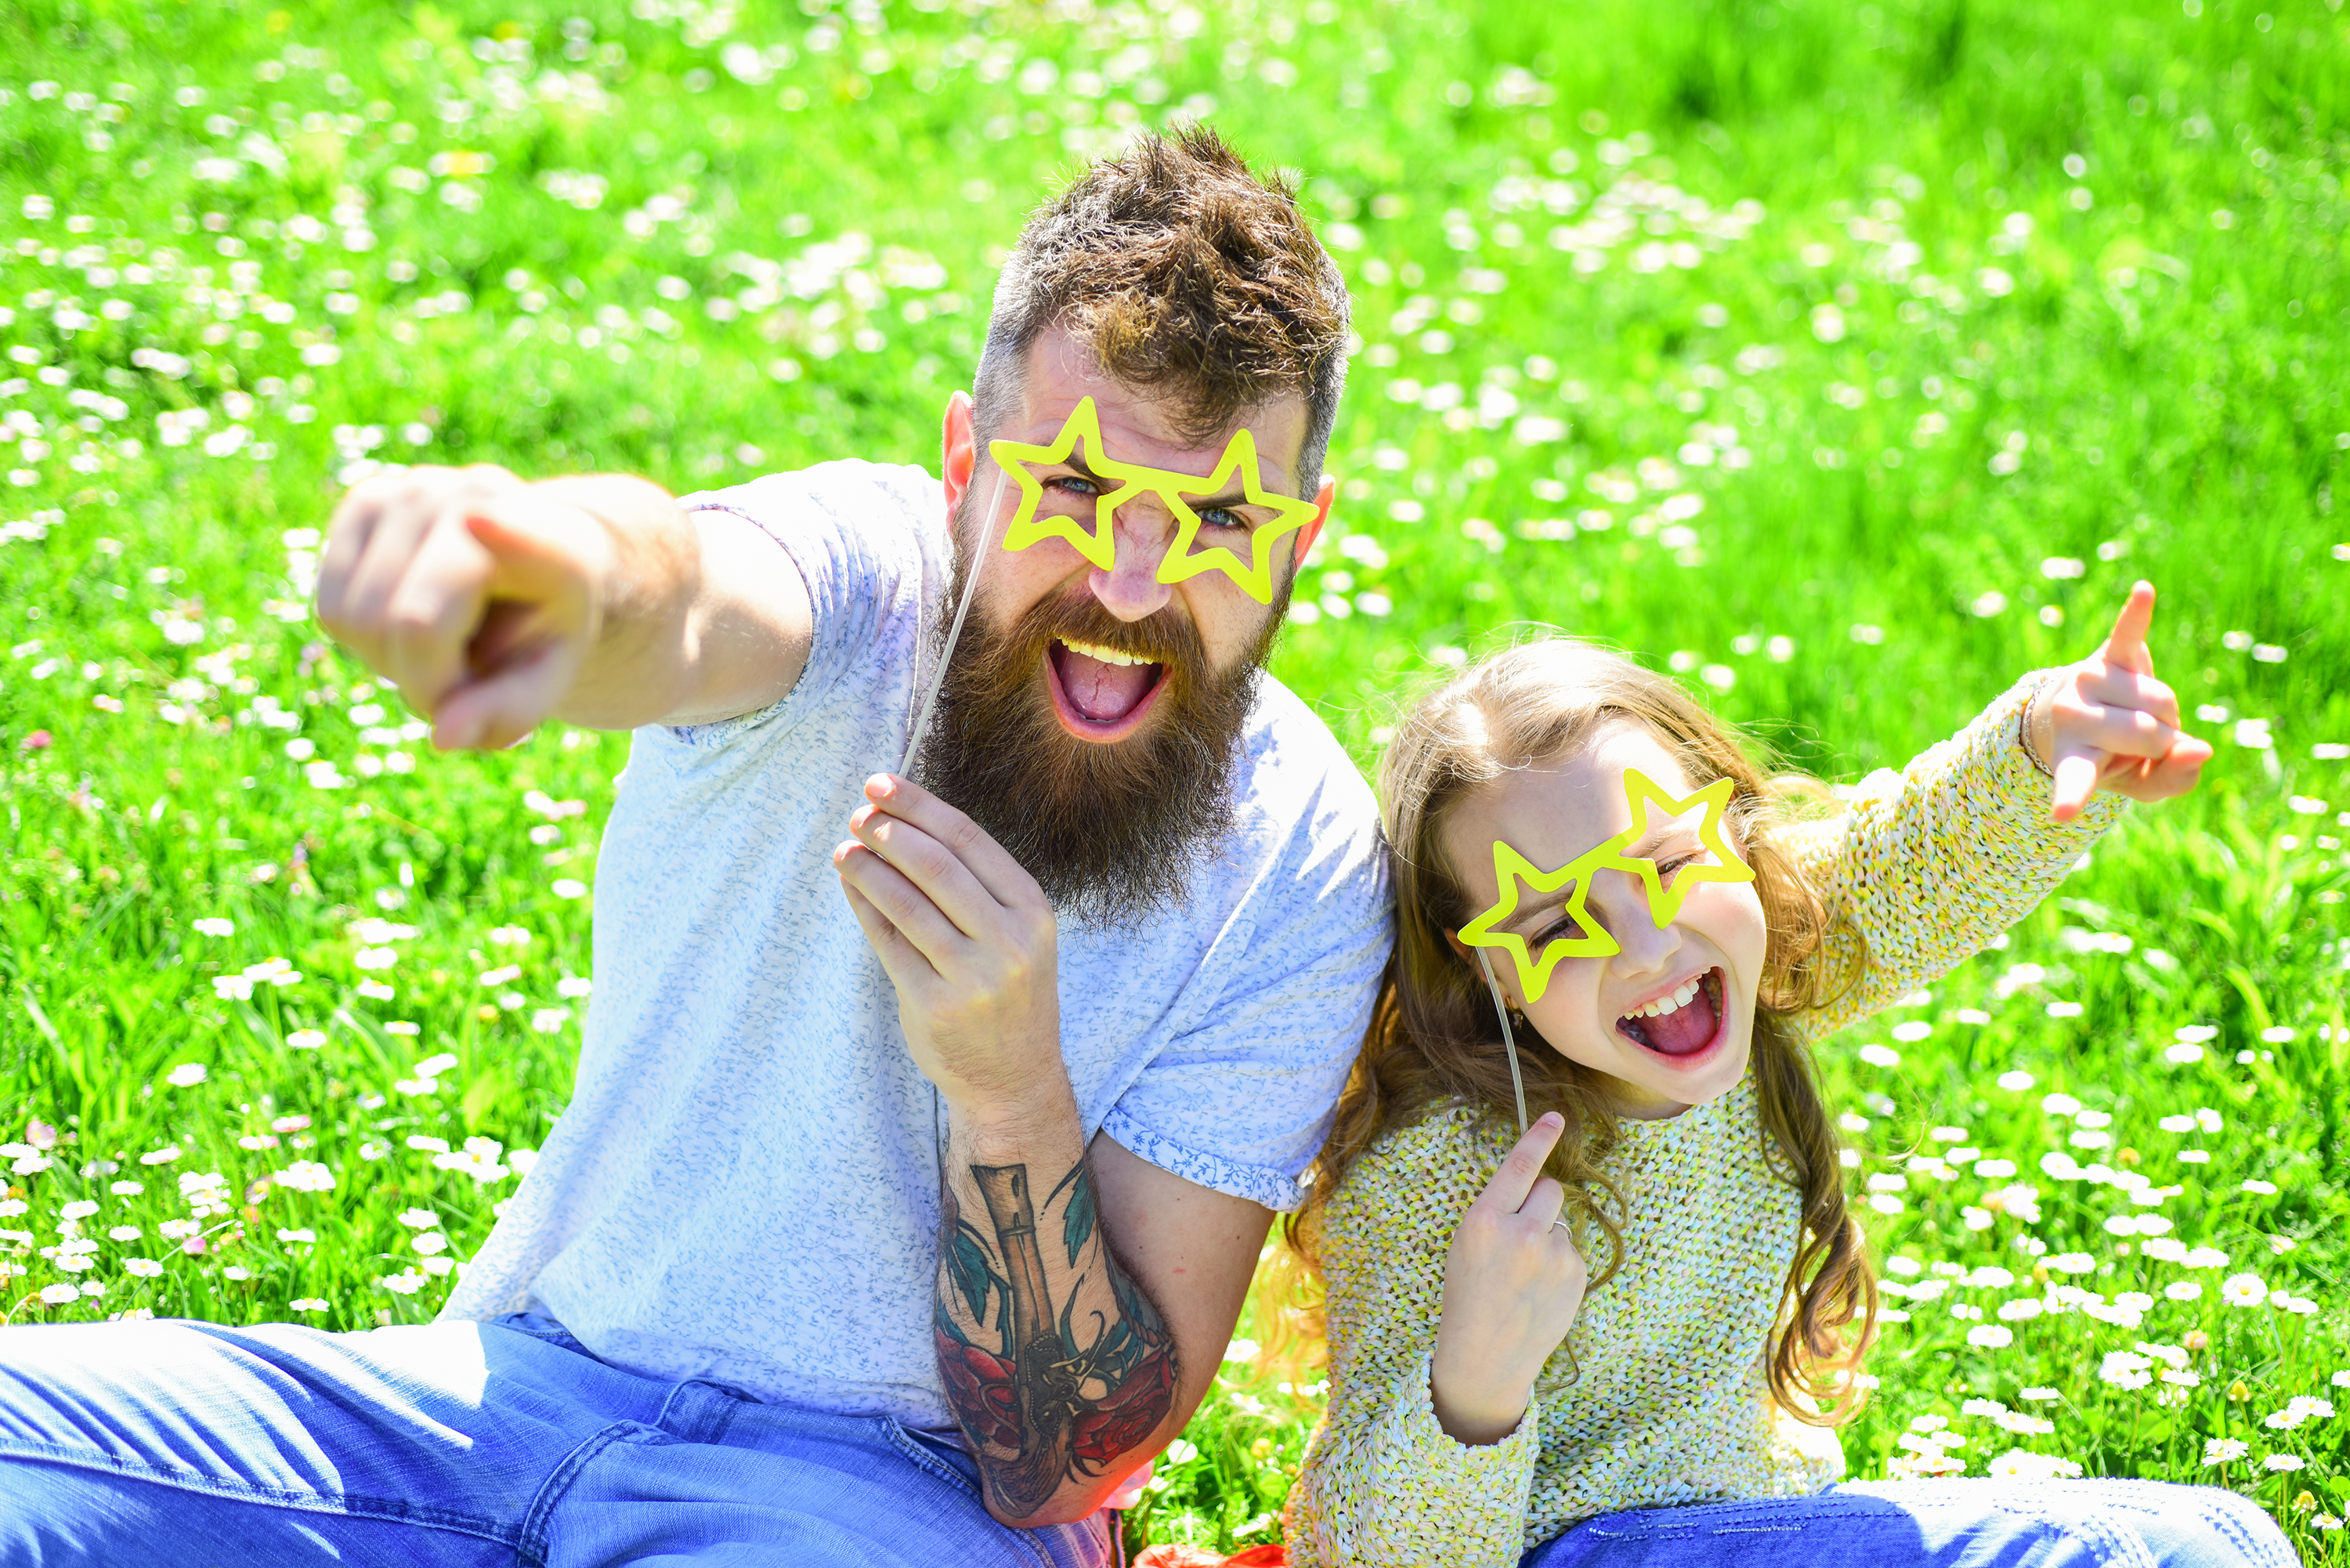 Child and dad posing with star shaped eyeglases photo booth attribute at meadow. Father and daughter sits on grass at free Reno concerts.